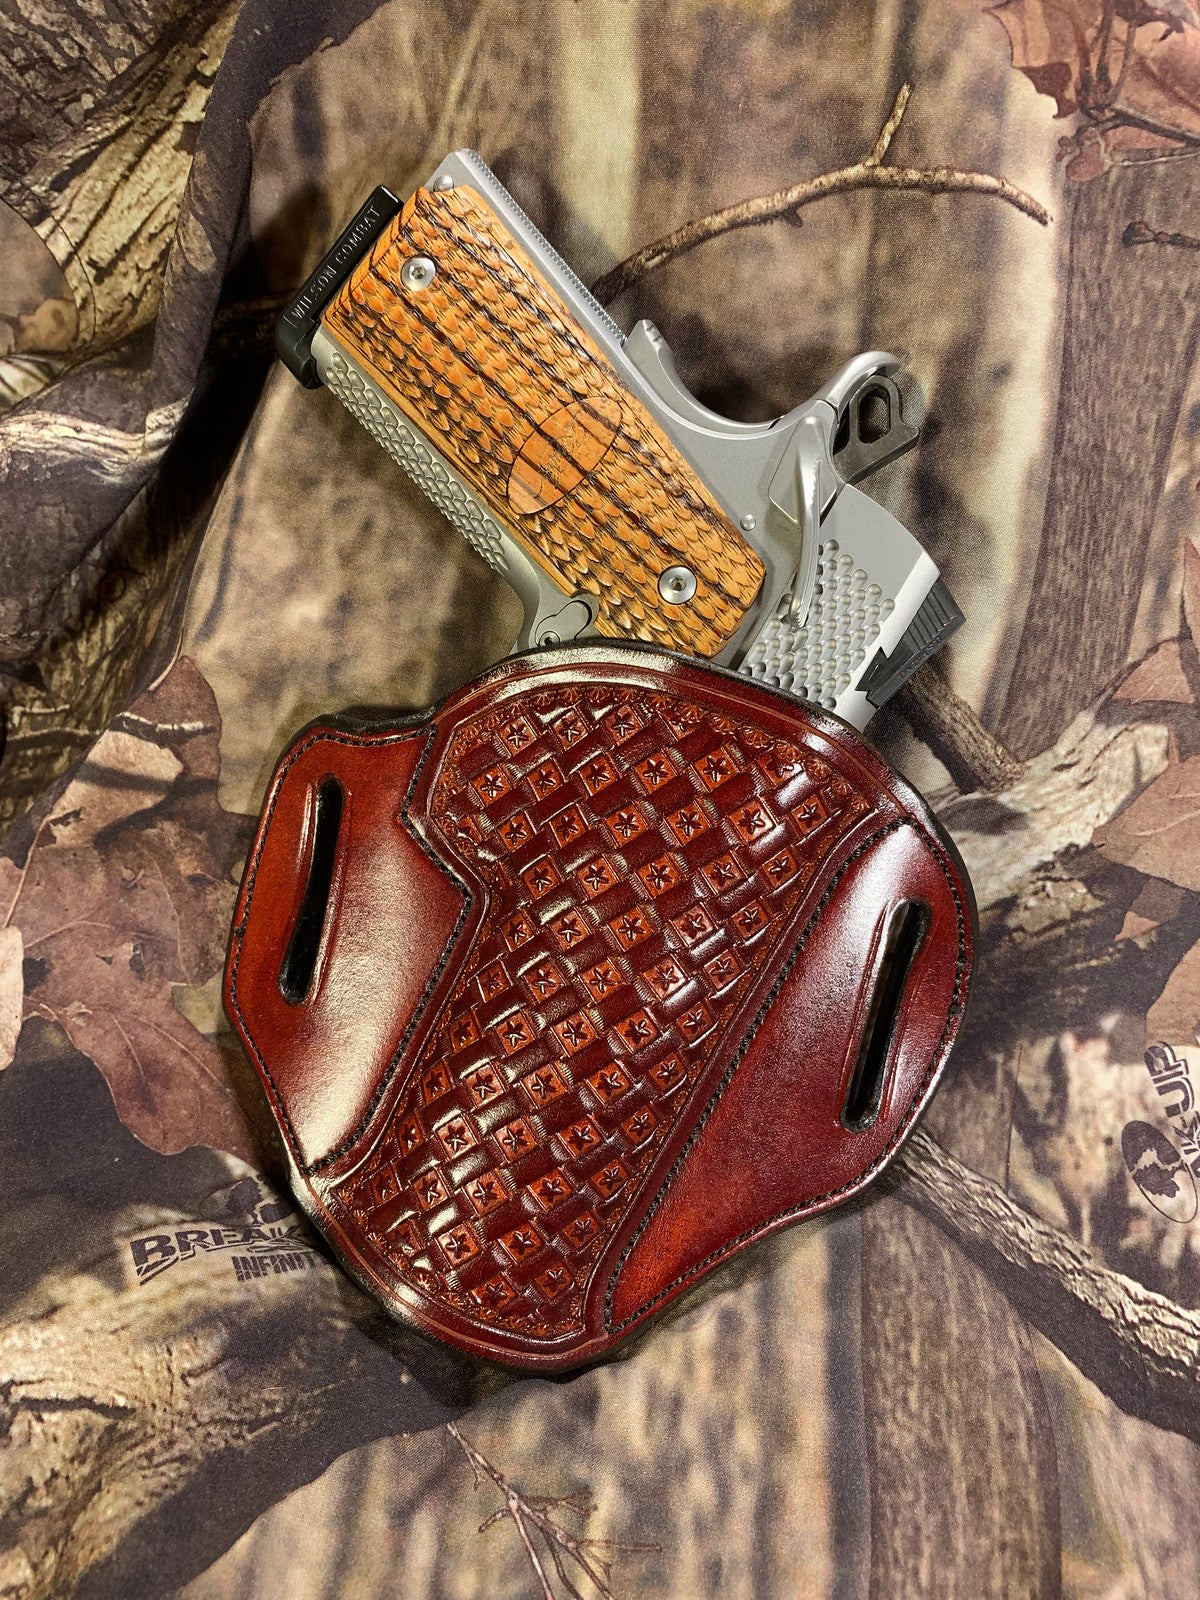 GIBSON 1911 LEATHER HOLSTER RH CARRY OWB BISMARCK BROWN STAR BASKET STAMPED IN-STOCK